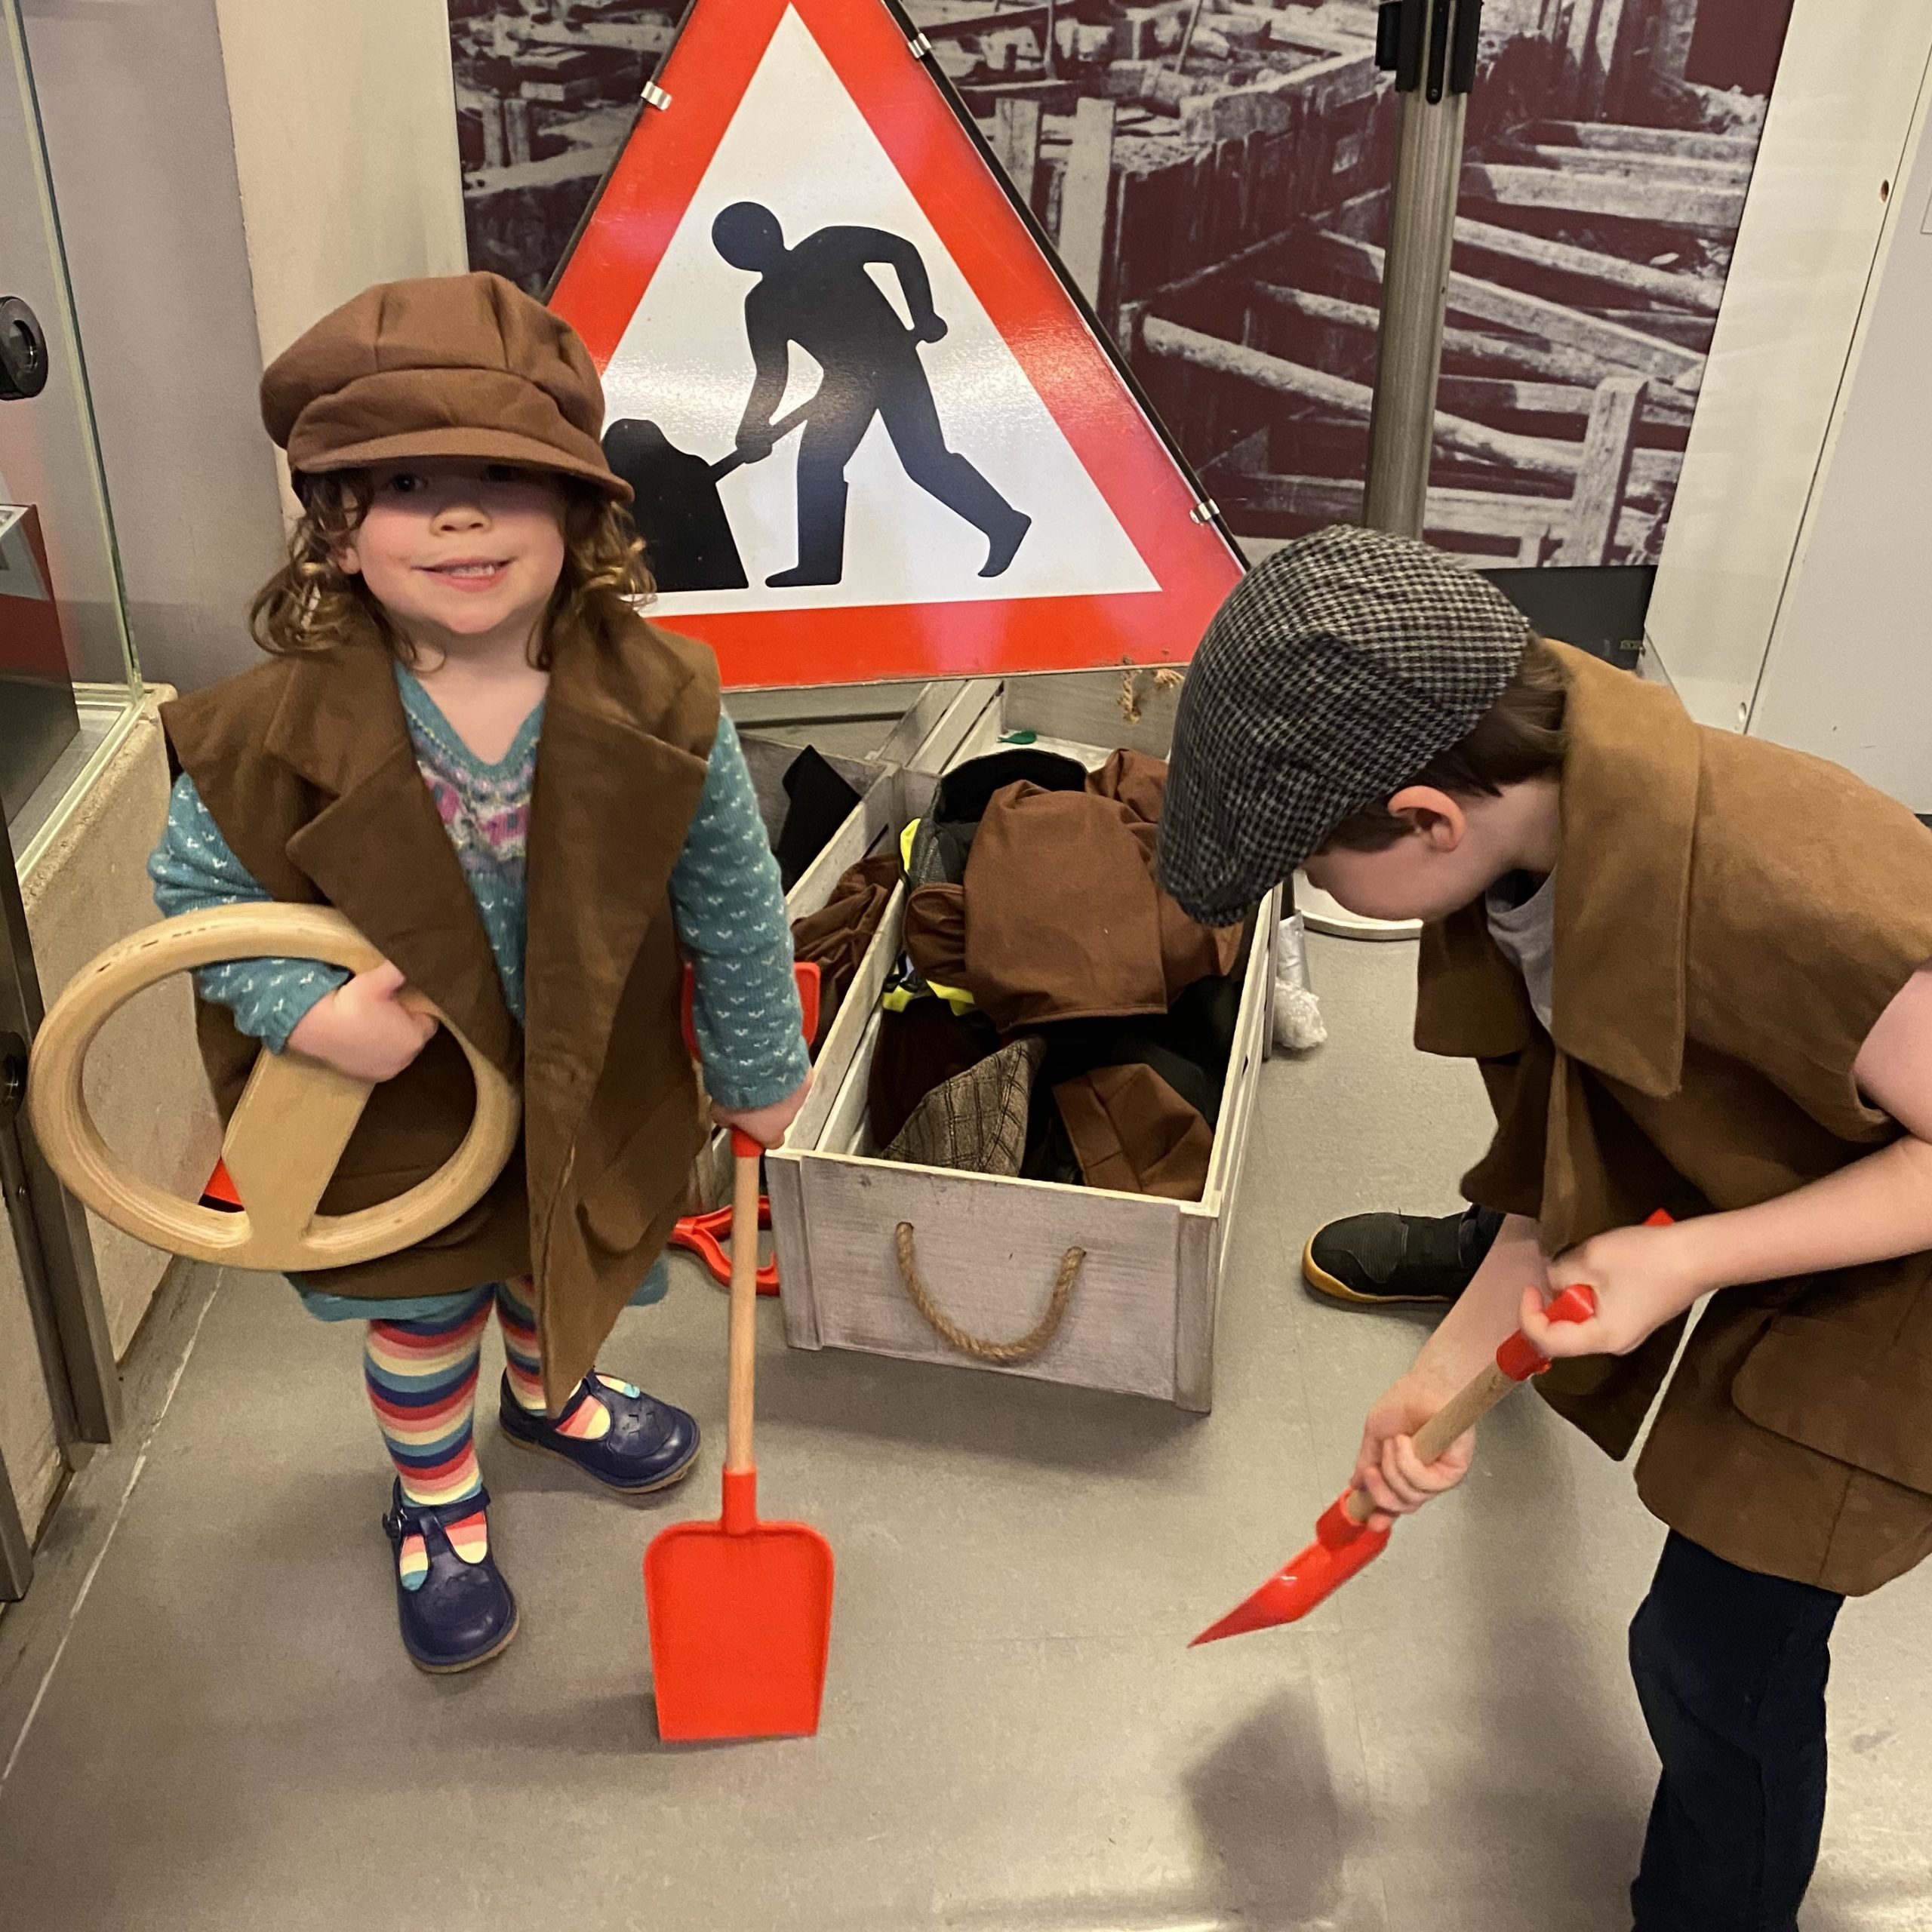 Two children role playing as underground workers